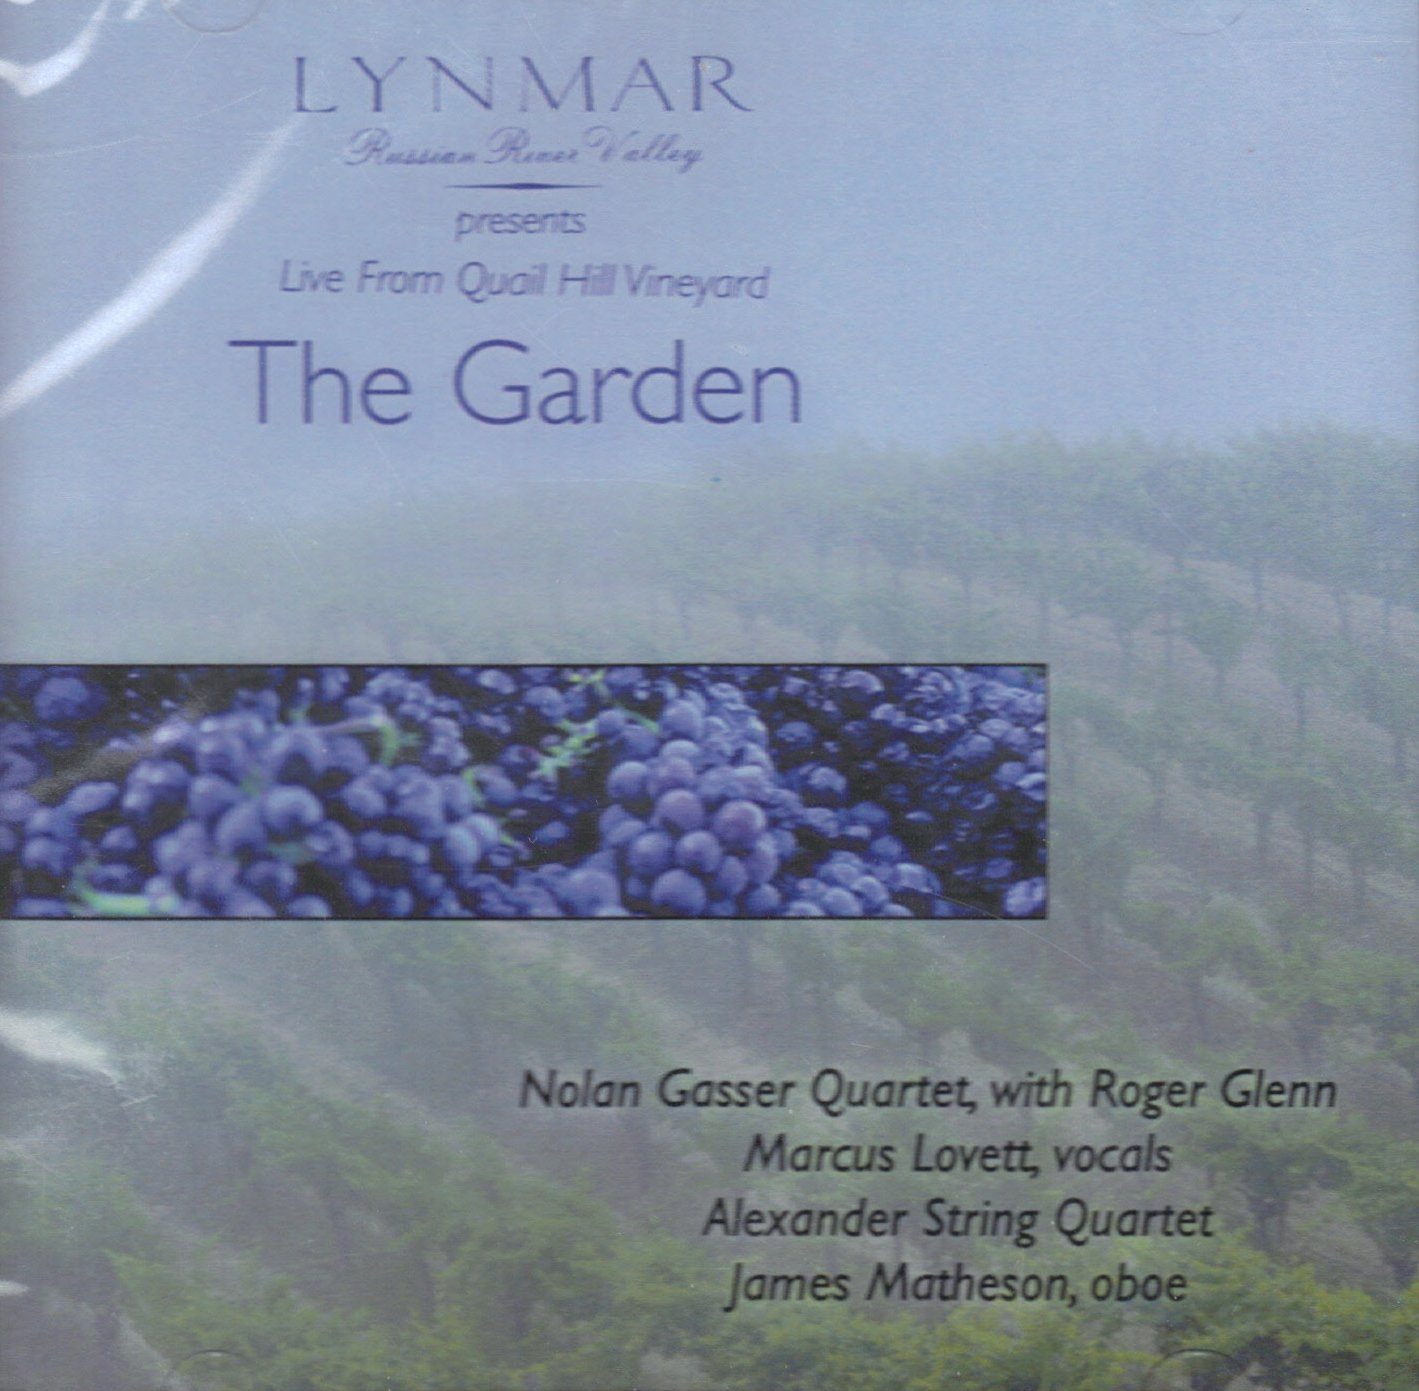 The Garden: A Musical Concert / Live From the Quail Hill Vineyard by Lynmar Winery